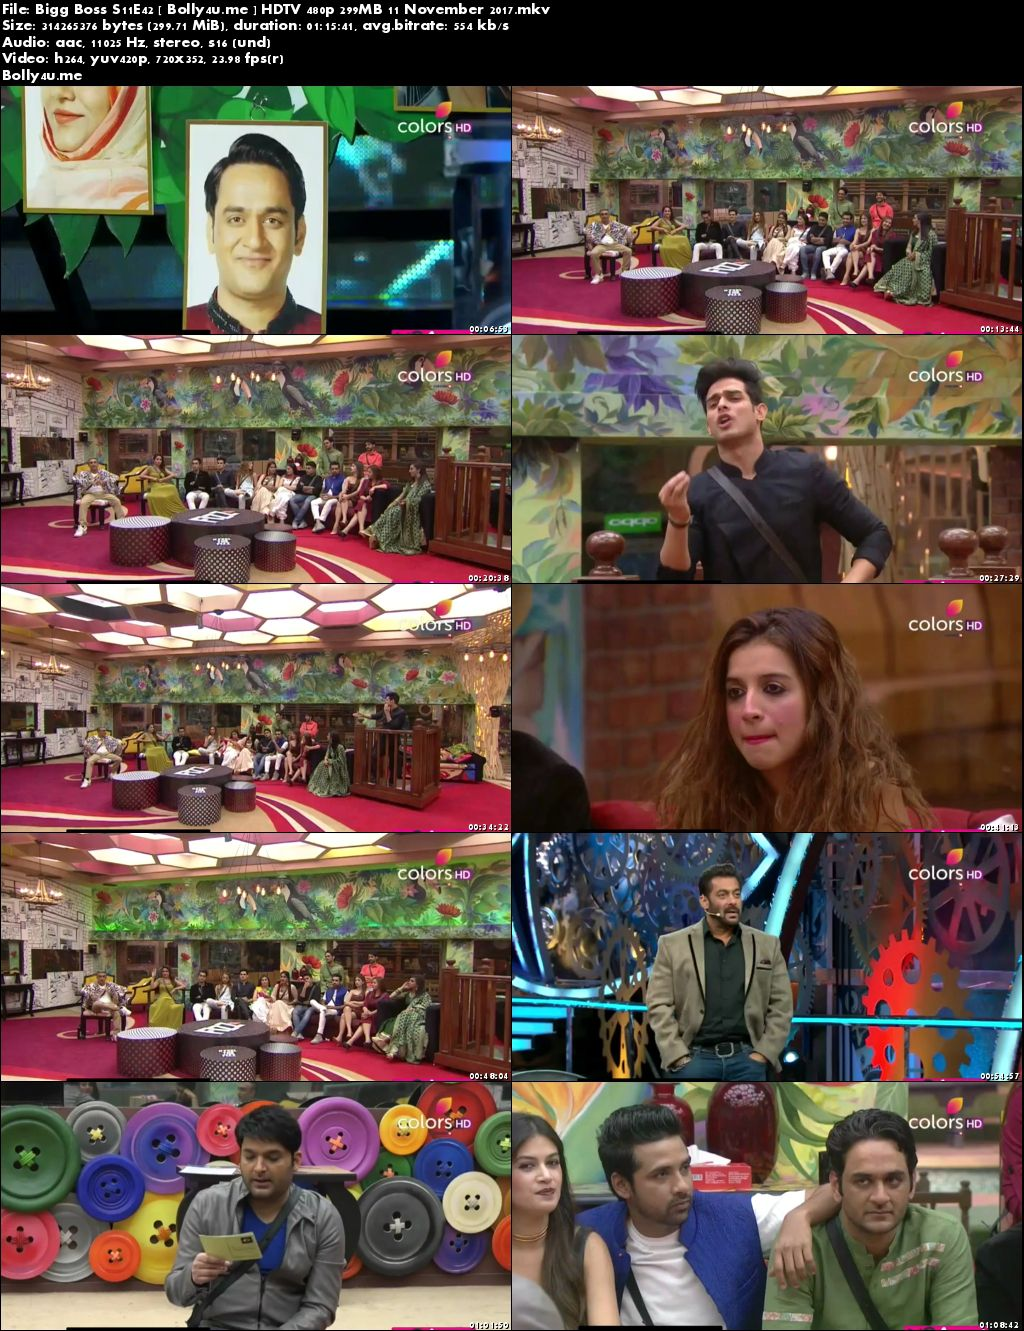 Bigg Boss S11E42 HDTV 480p 300MB 11 November 2017 Download